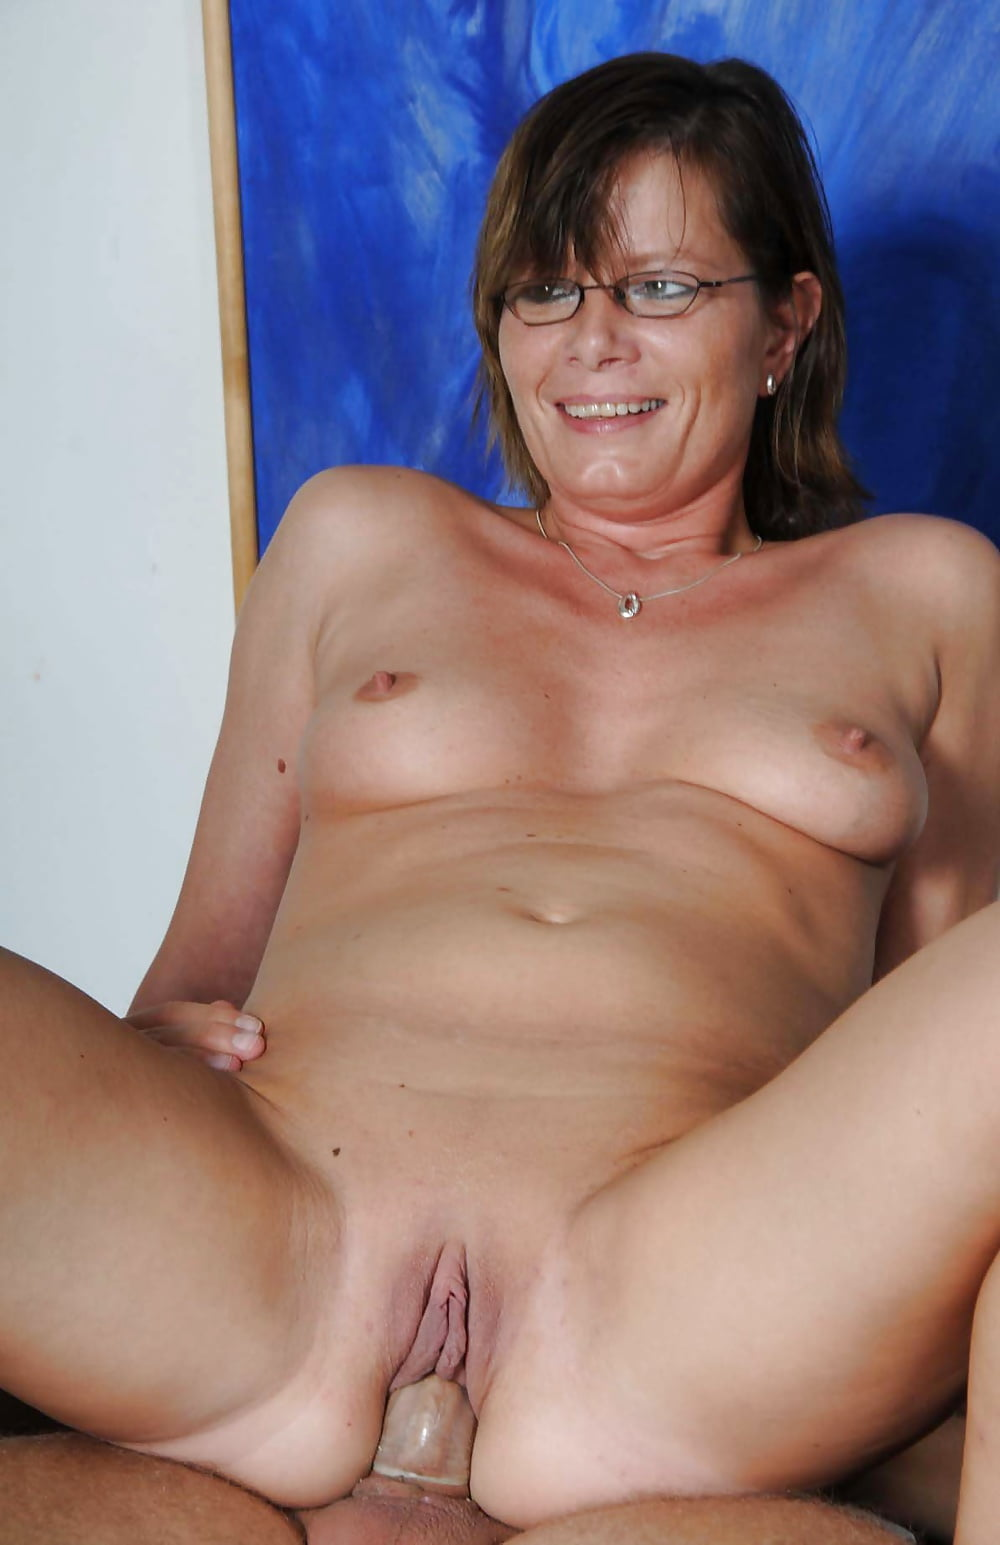 School horny housewifes naked naked